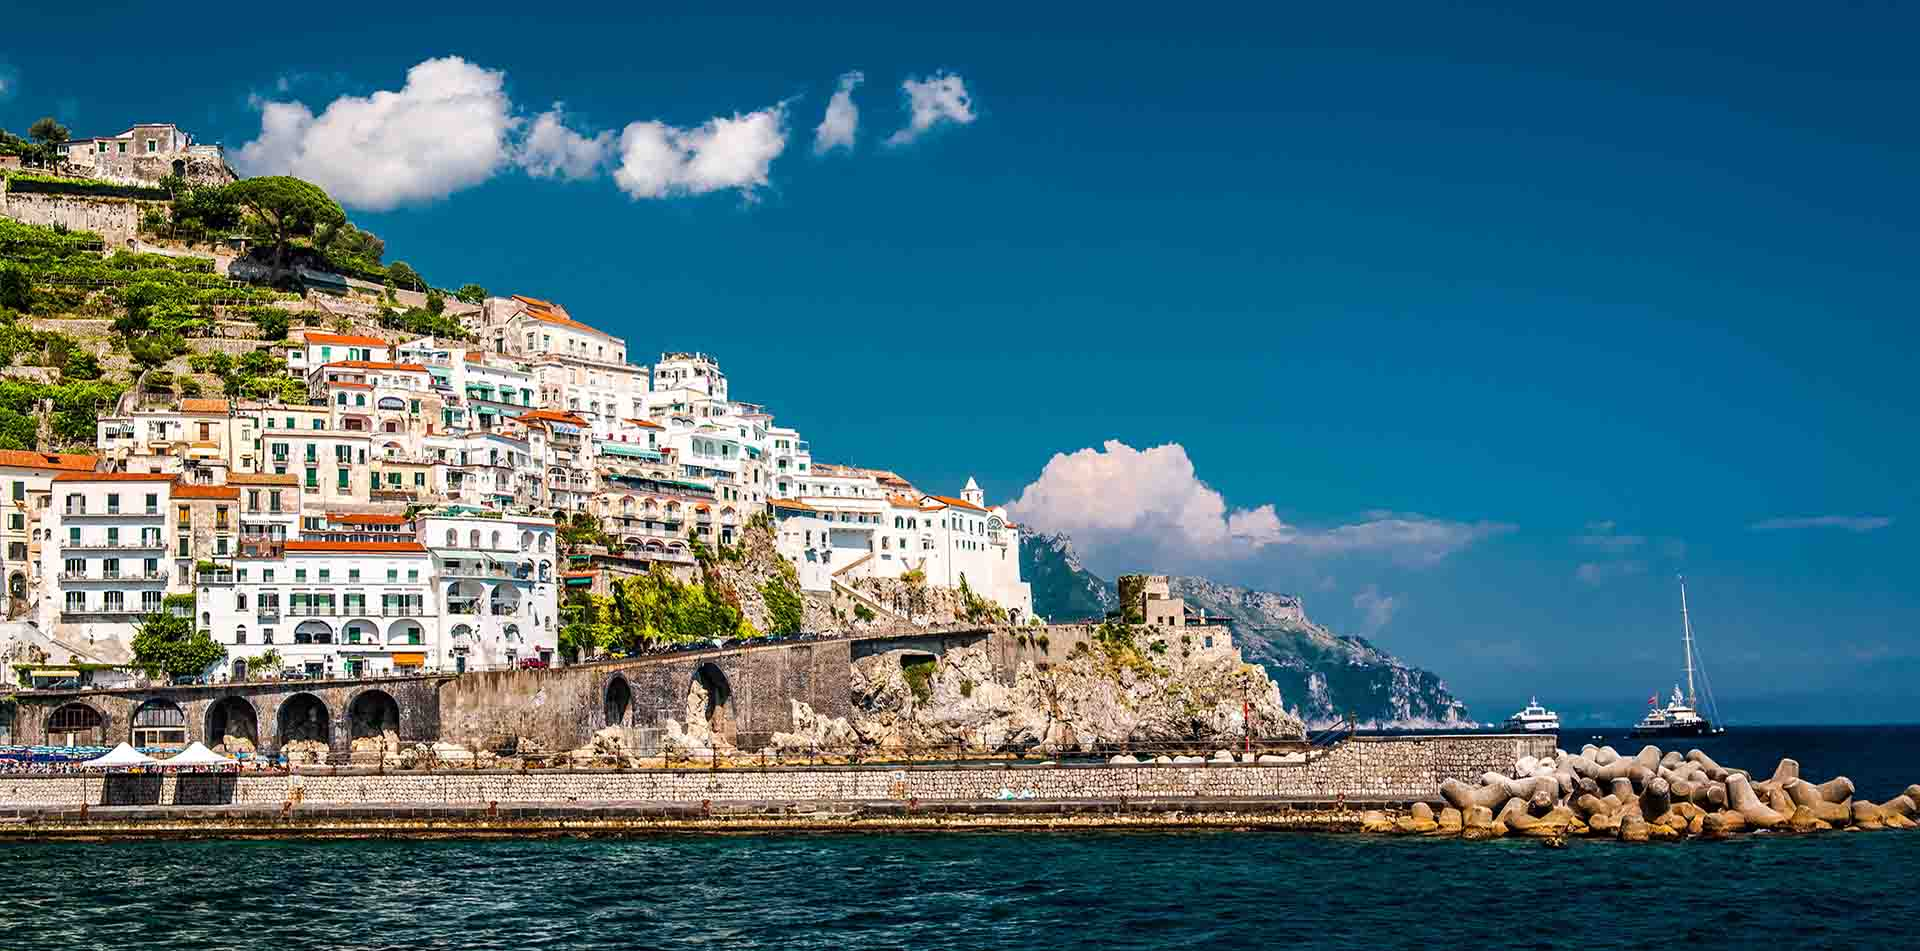 Europe Italy Naples Amalfi Coast beautiful coastline ocean view cliffside harbor - luxury vacation destinations